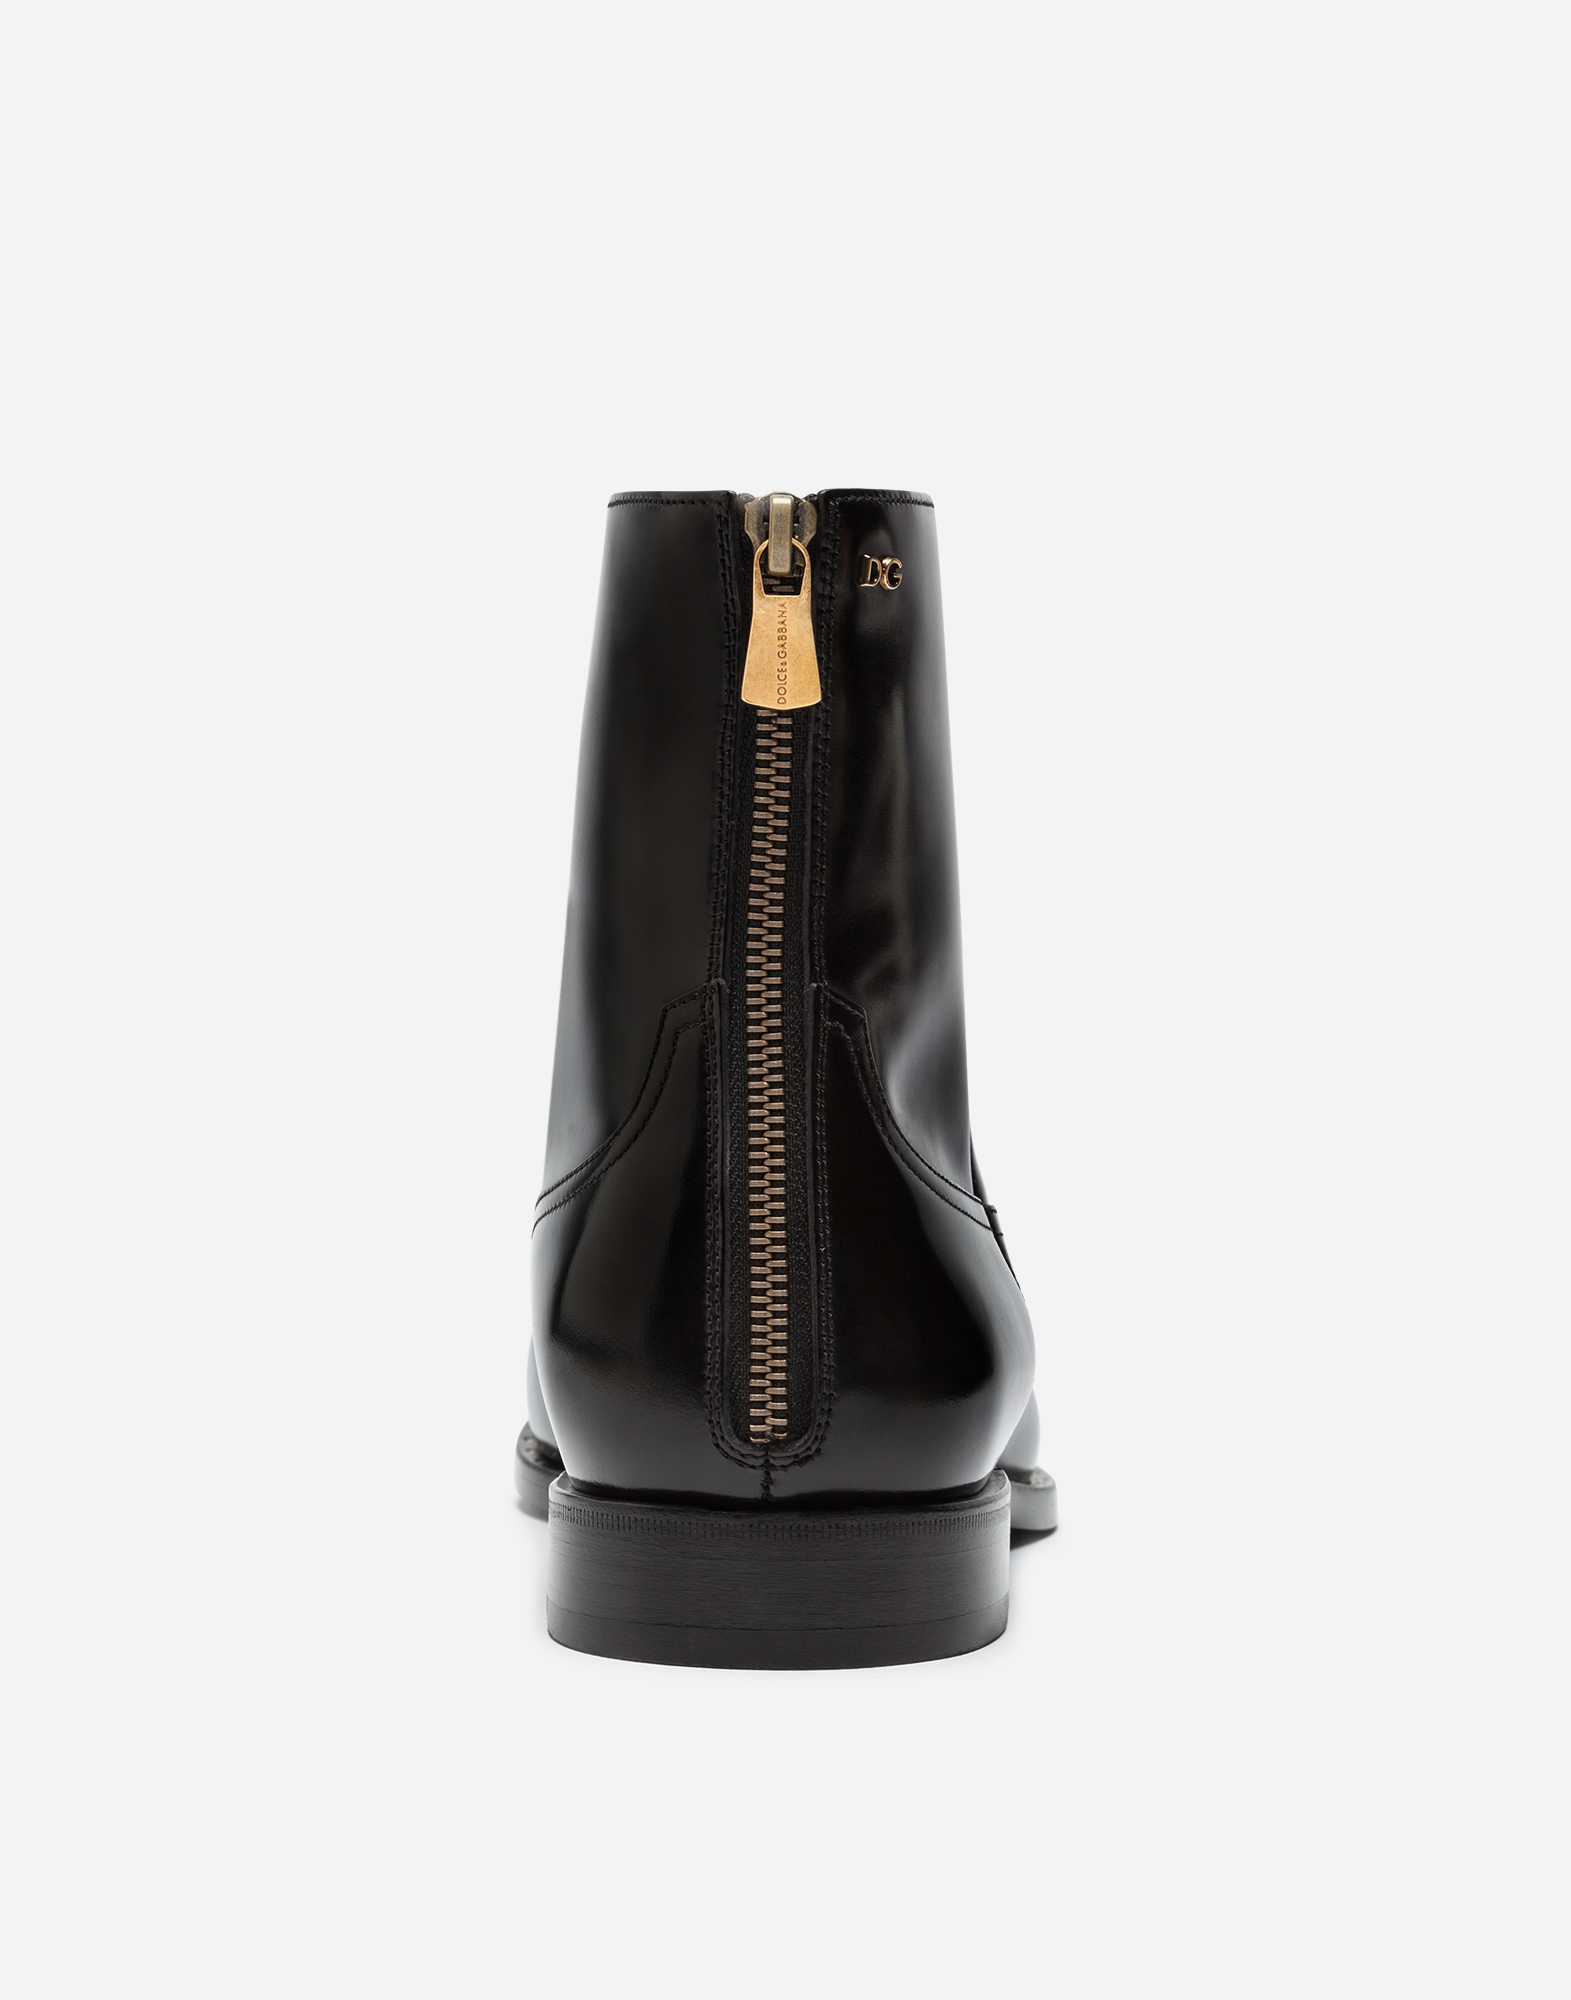 BRUSHED CALFSKIN ANKLE BOOTS